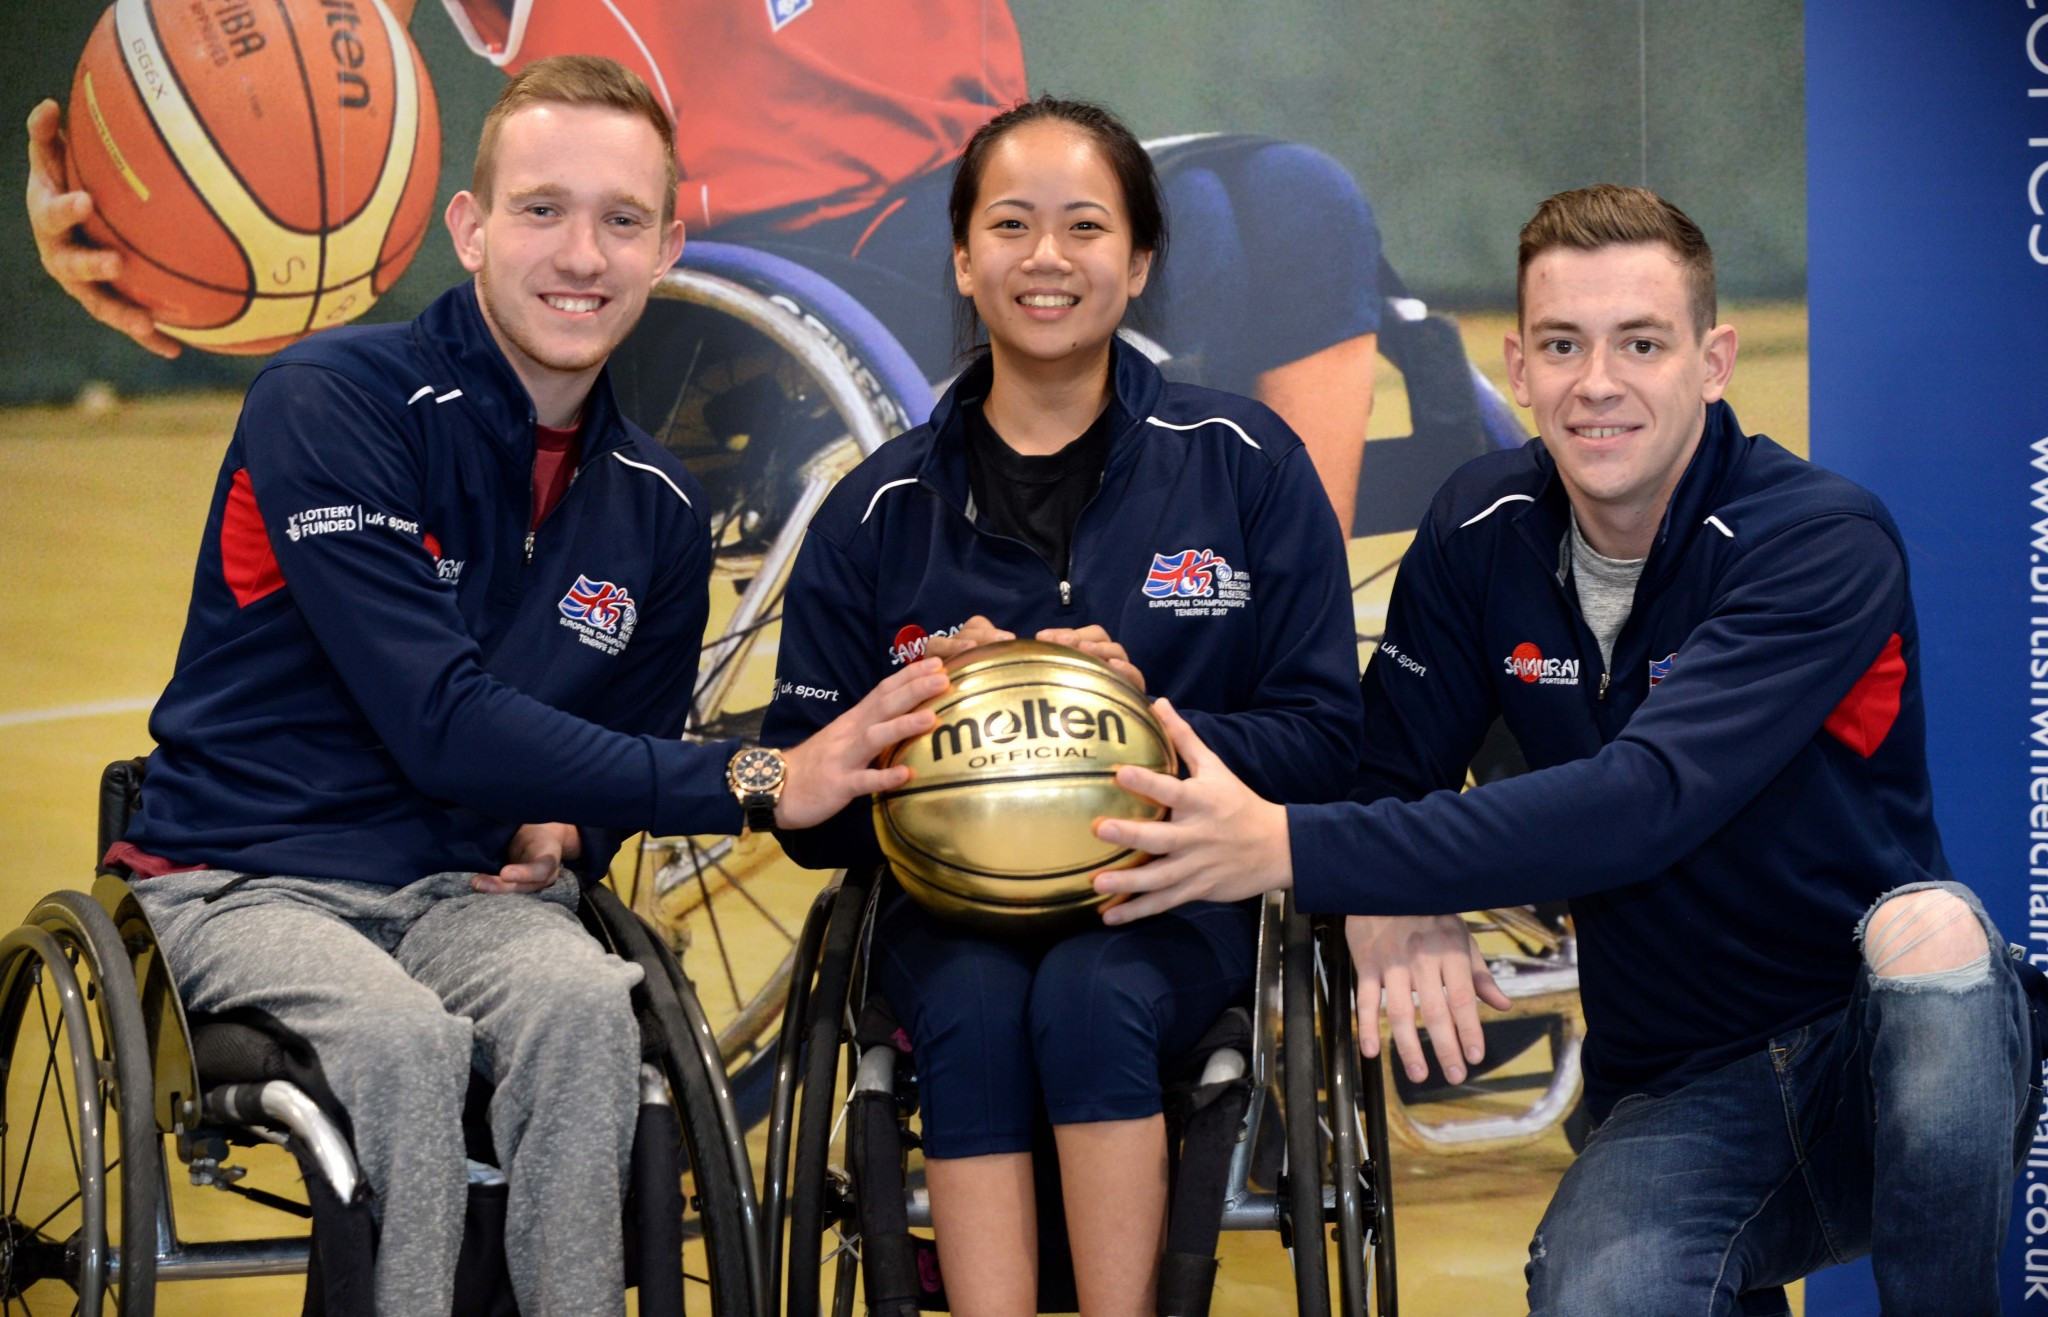 British Wheelchair Basketball and Unicorn Products Ltd have signed a four-year deal confirming Molten as the official ball of the sport in the United Kingdom for the Tokyo 2020 Paralympic cycle ©British Wheelchair Basketball